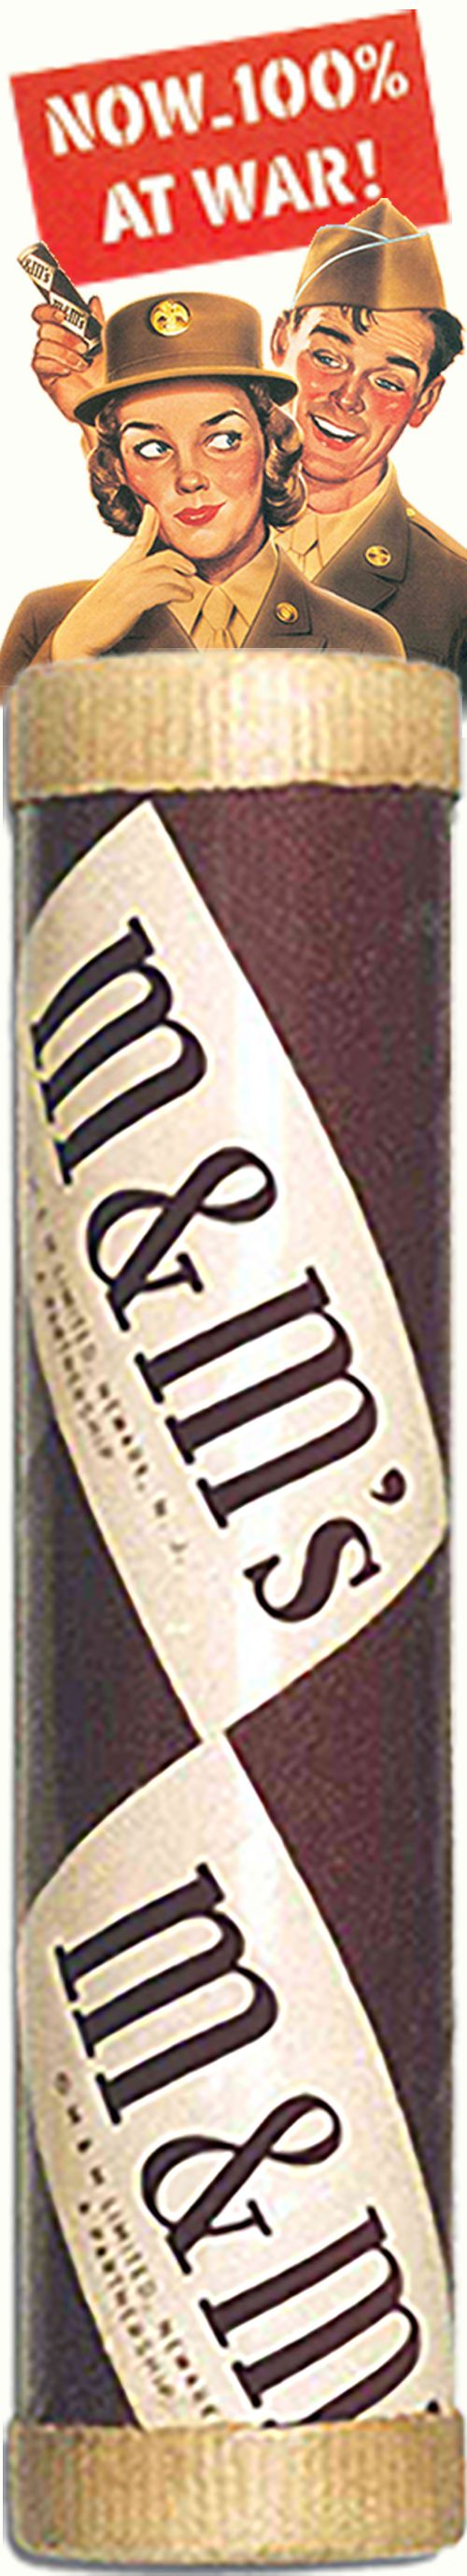 03 Mar 41: The Mars Company receives a patent for their process of producing M&M chocolate pellets within a candy shell which, during the war, will be exclusively sold to the US military. #WWII #History